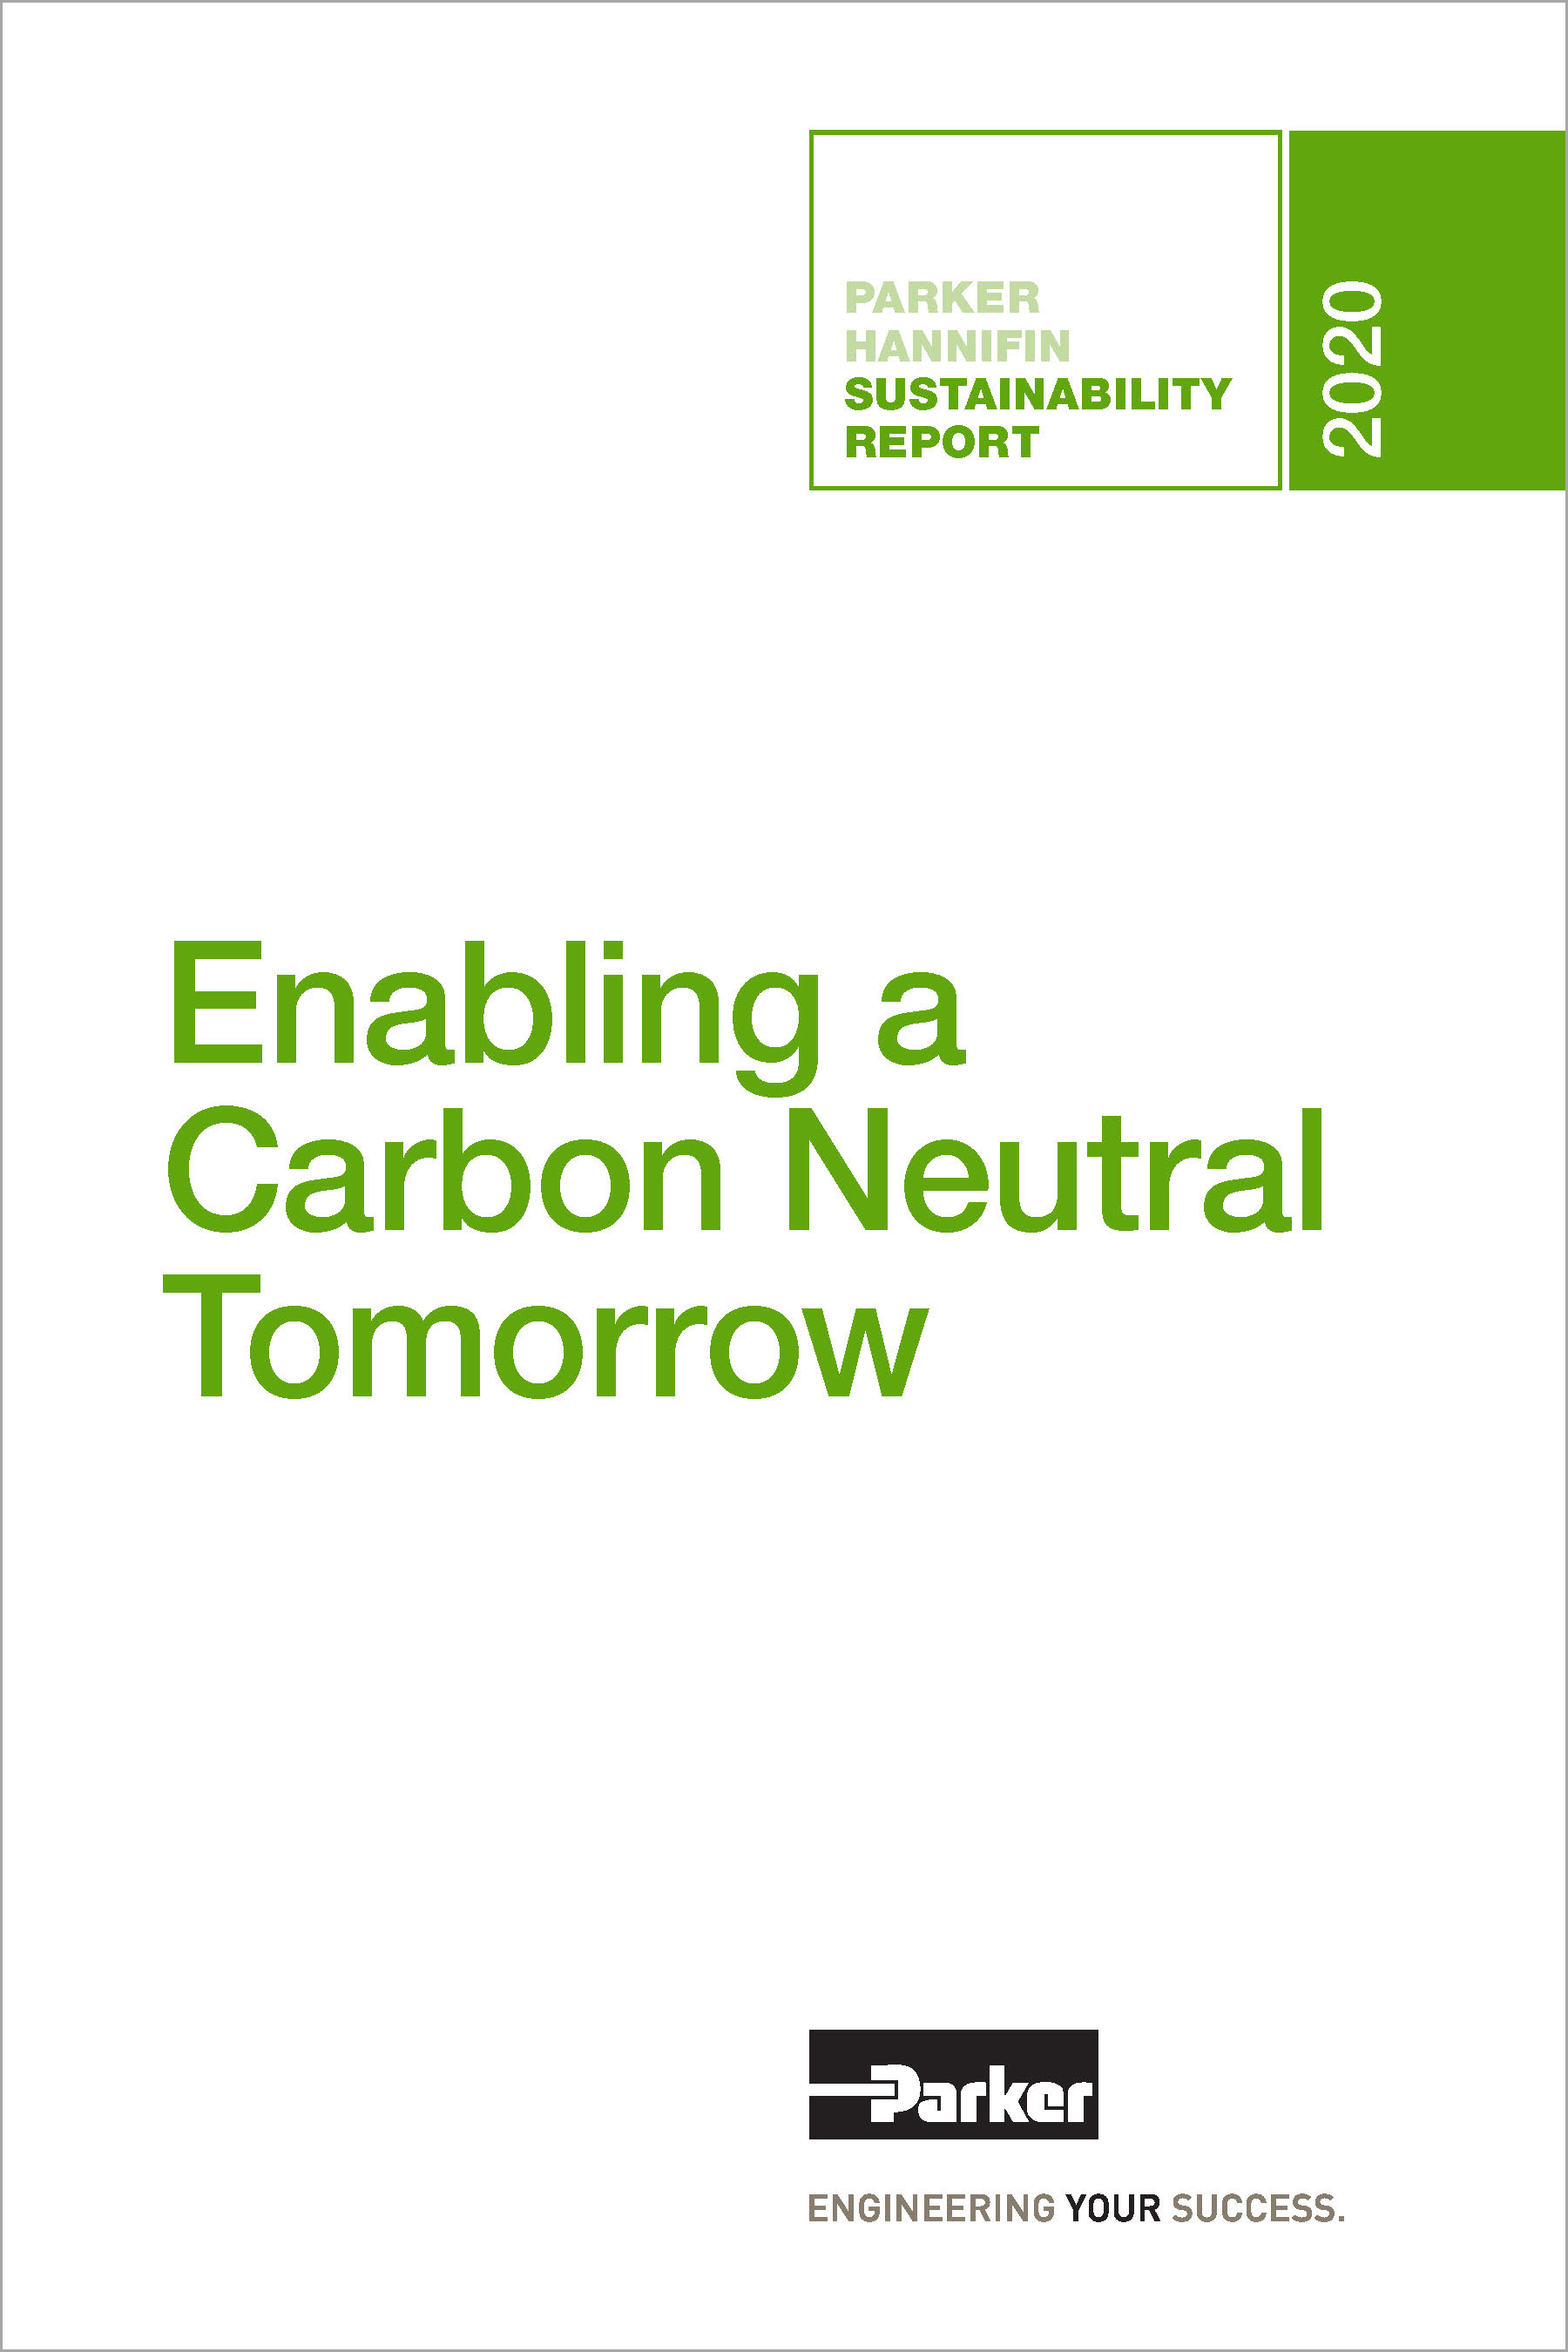 Parker Hannifin Sustainability Report 2020 Cover